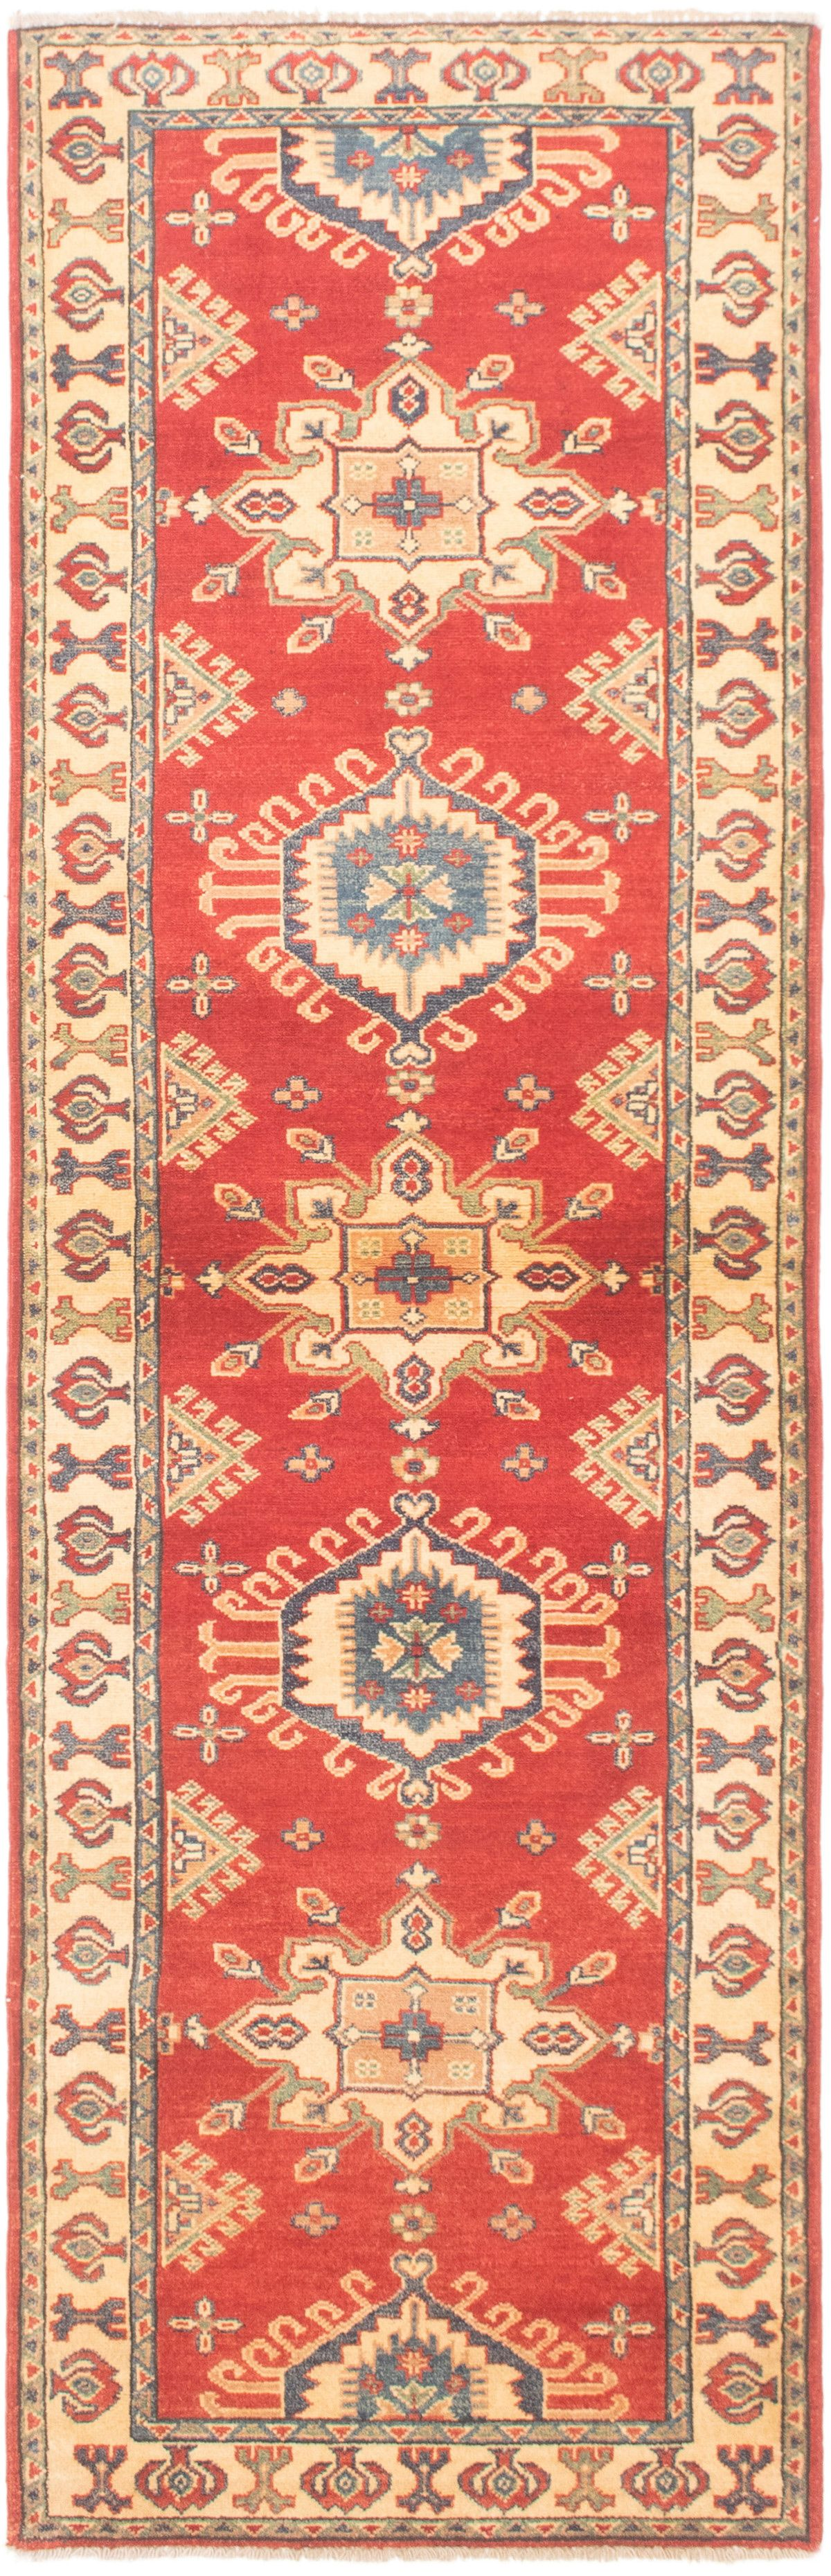 """Hand-knotted Finest Gazni Red Wool Rug 2'9"""" x 9'3""""  Size: 2'9"""" x 9'3"""""""